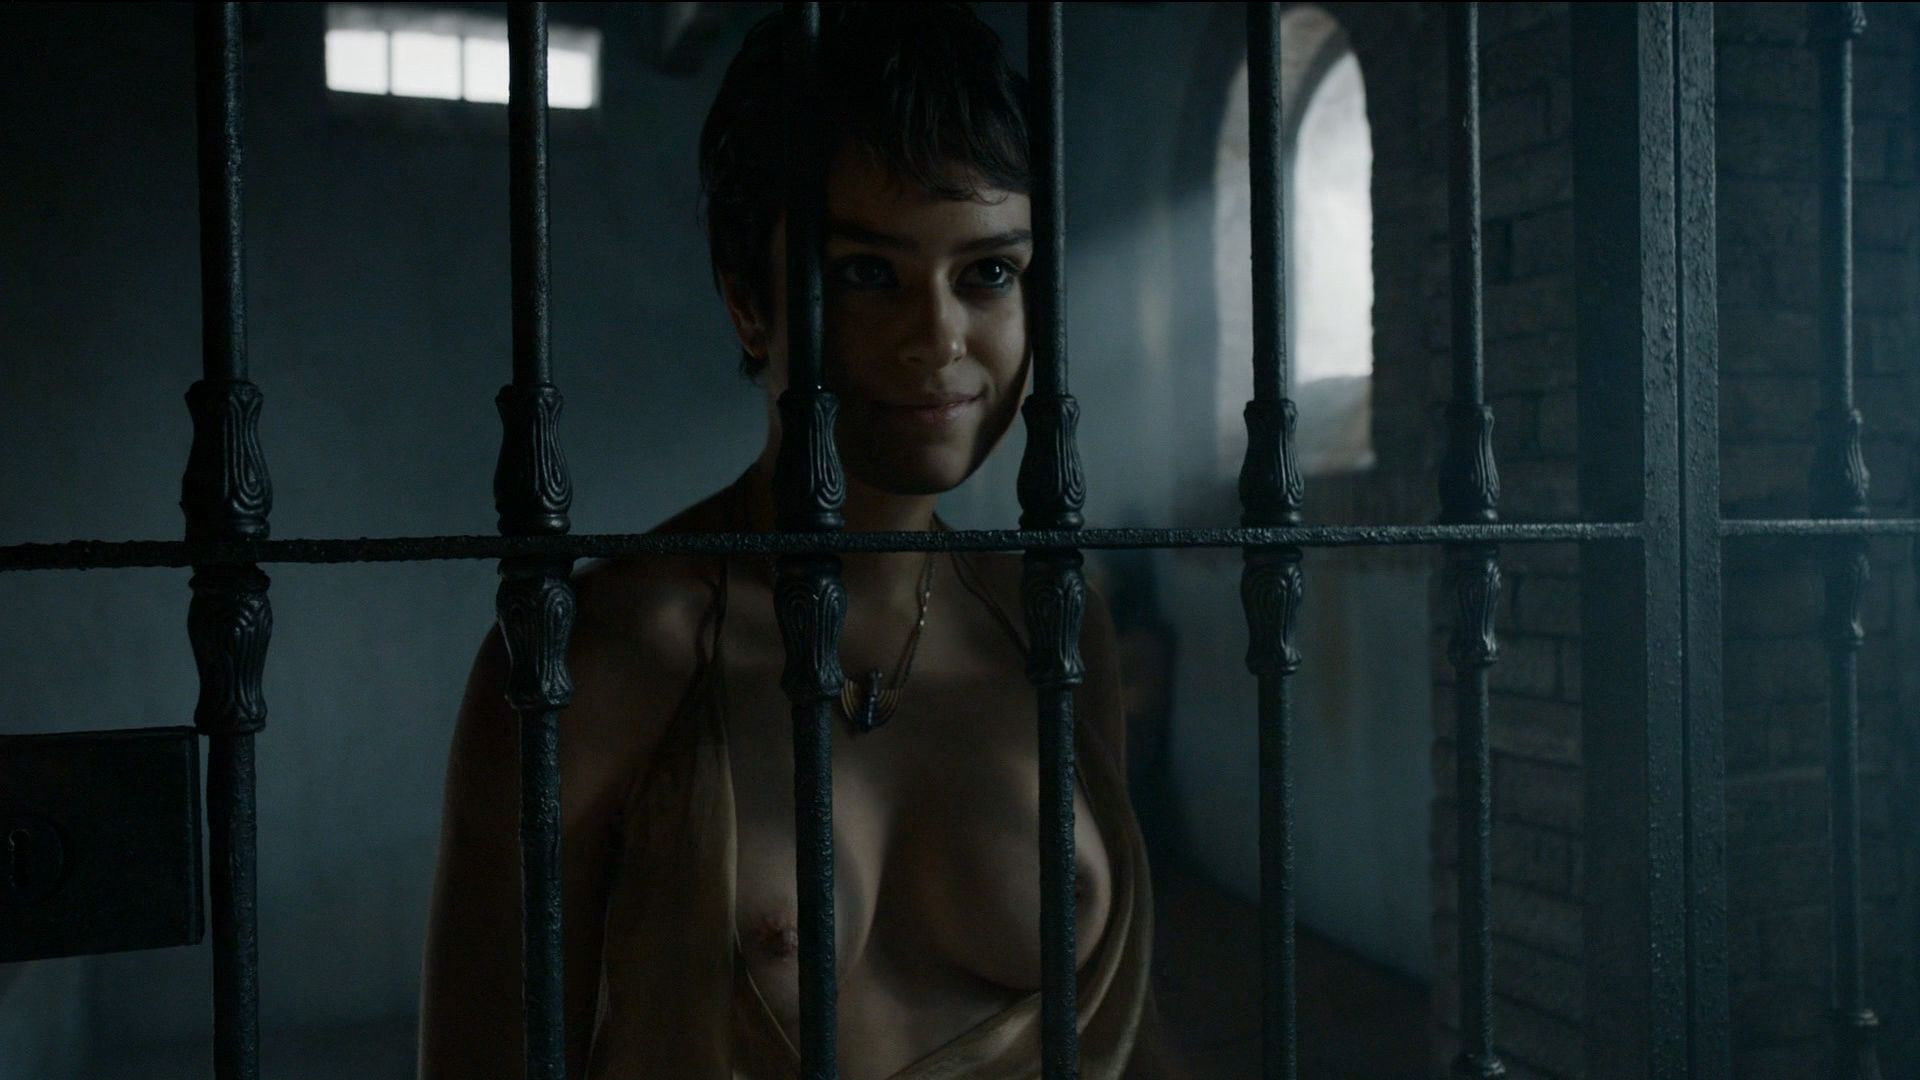 Rosabell Laurenti Sellers Topless 3 TheFappening.nu